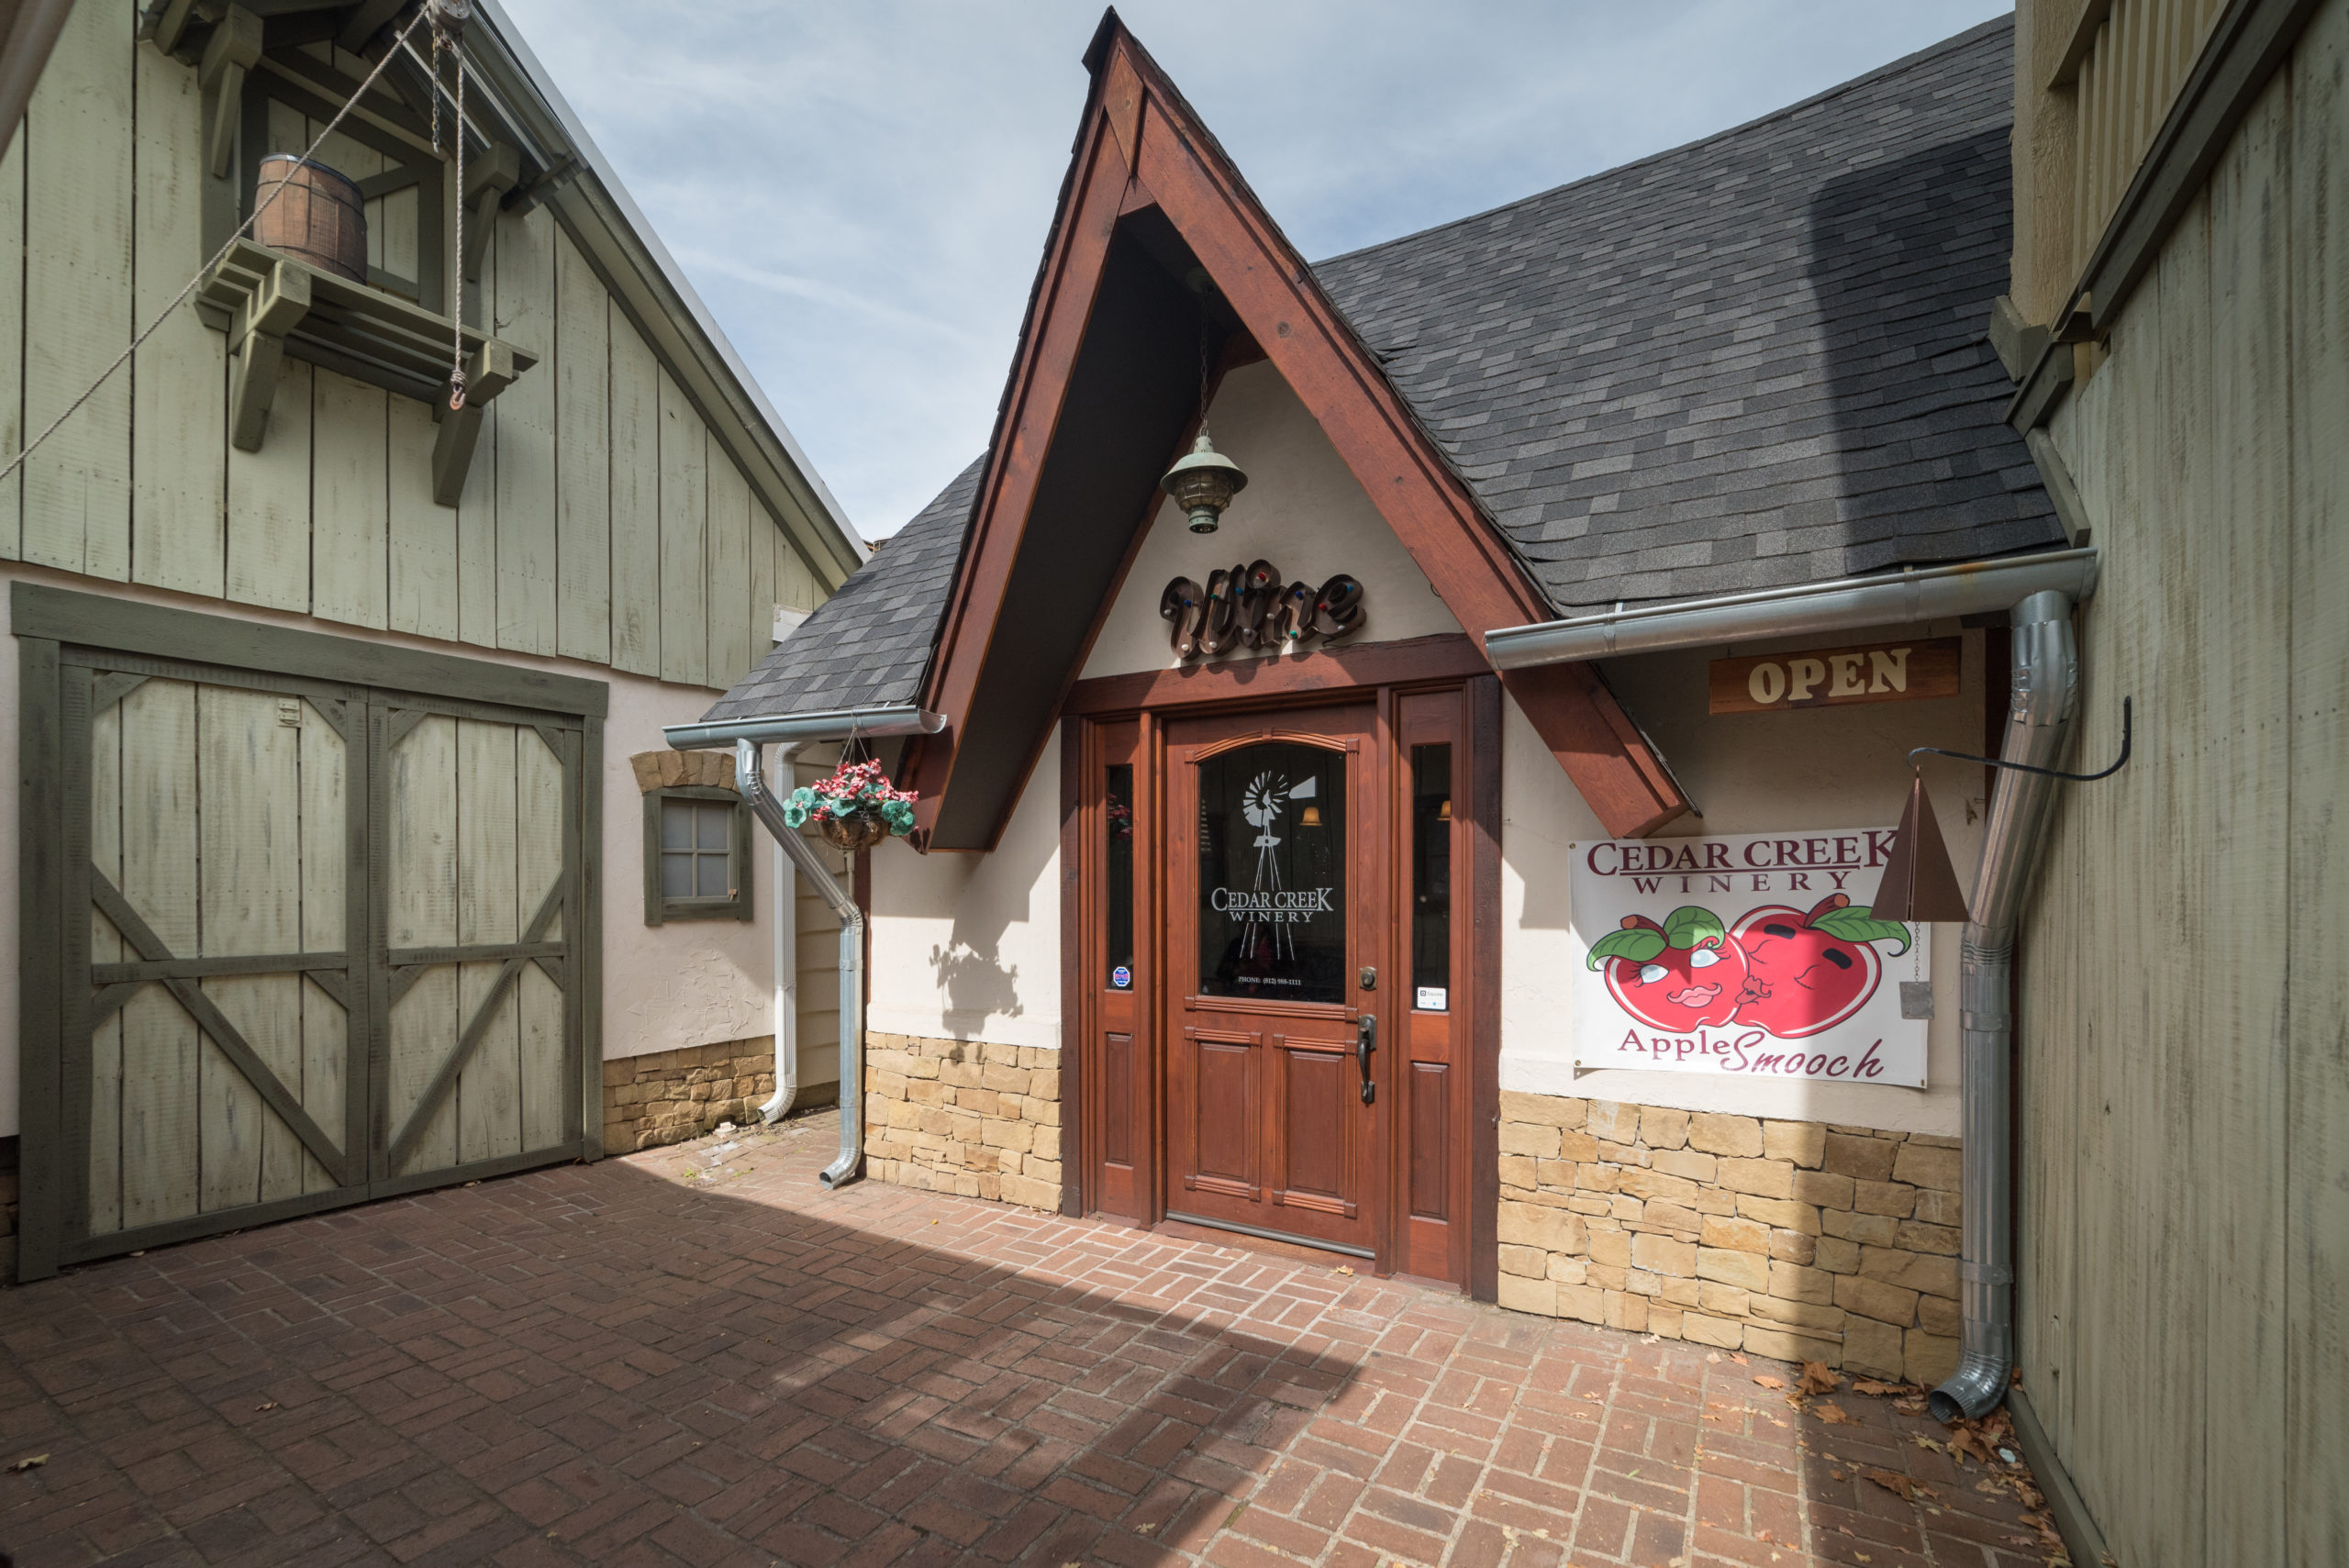 Cedar Creek Wine Tasting Room Entrance in Nashville, Indiana